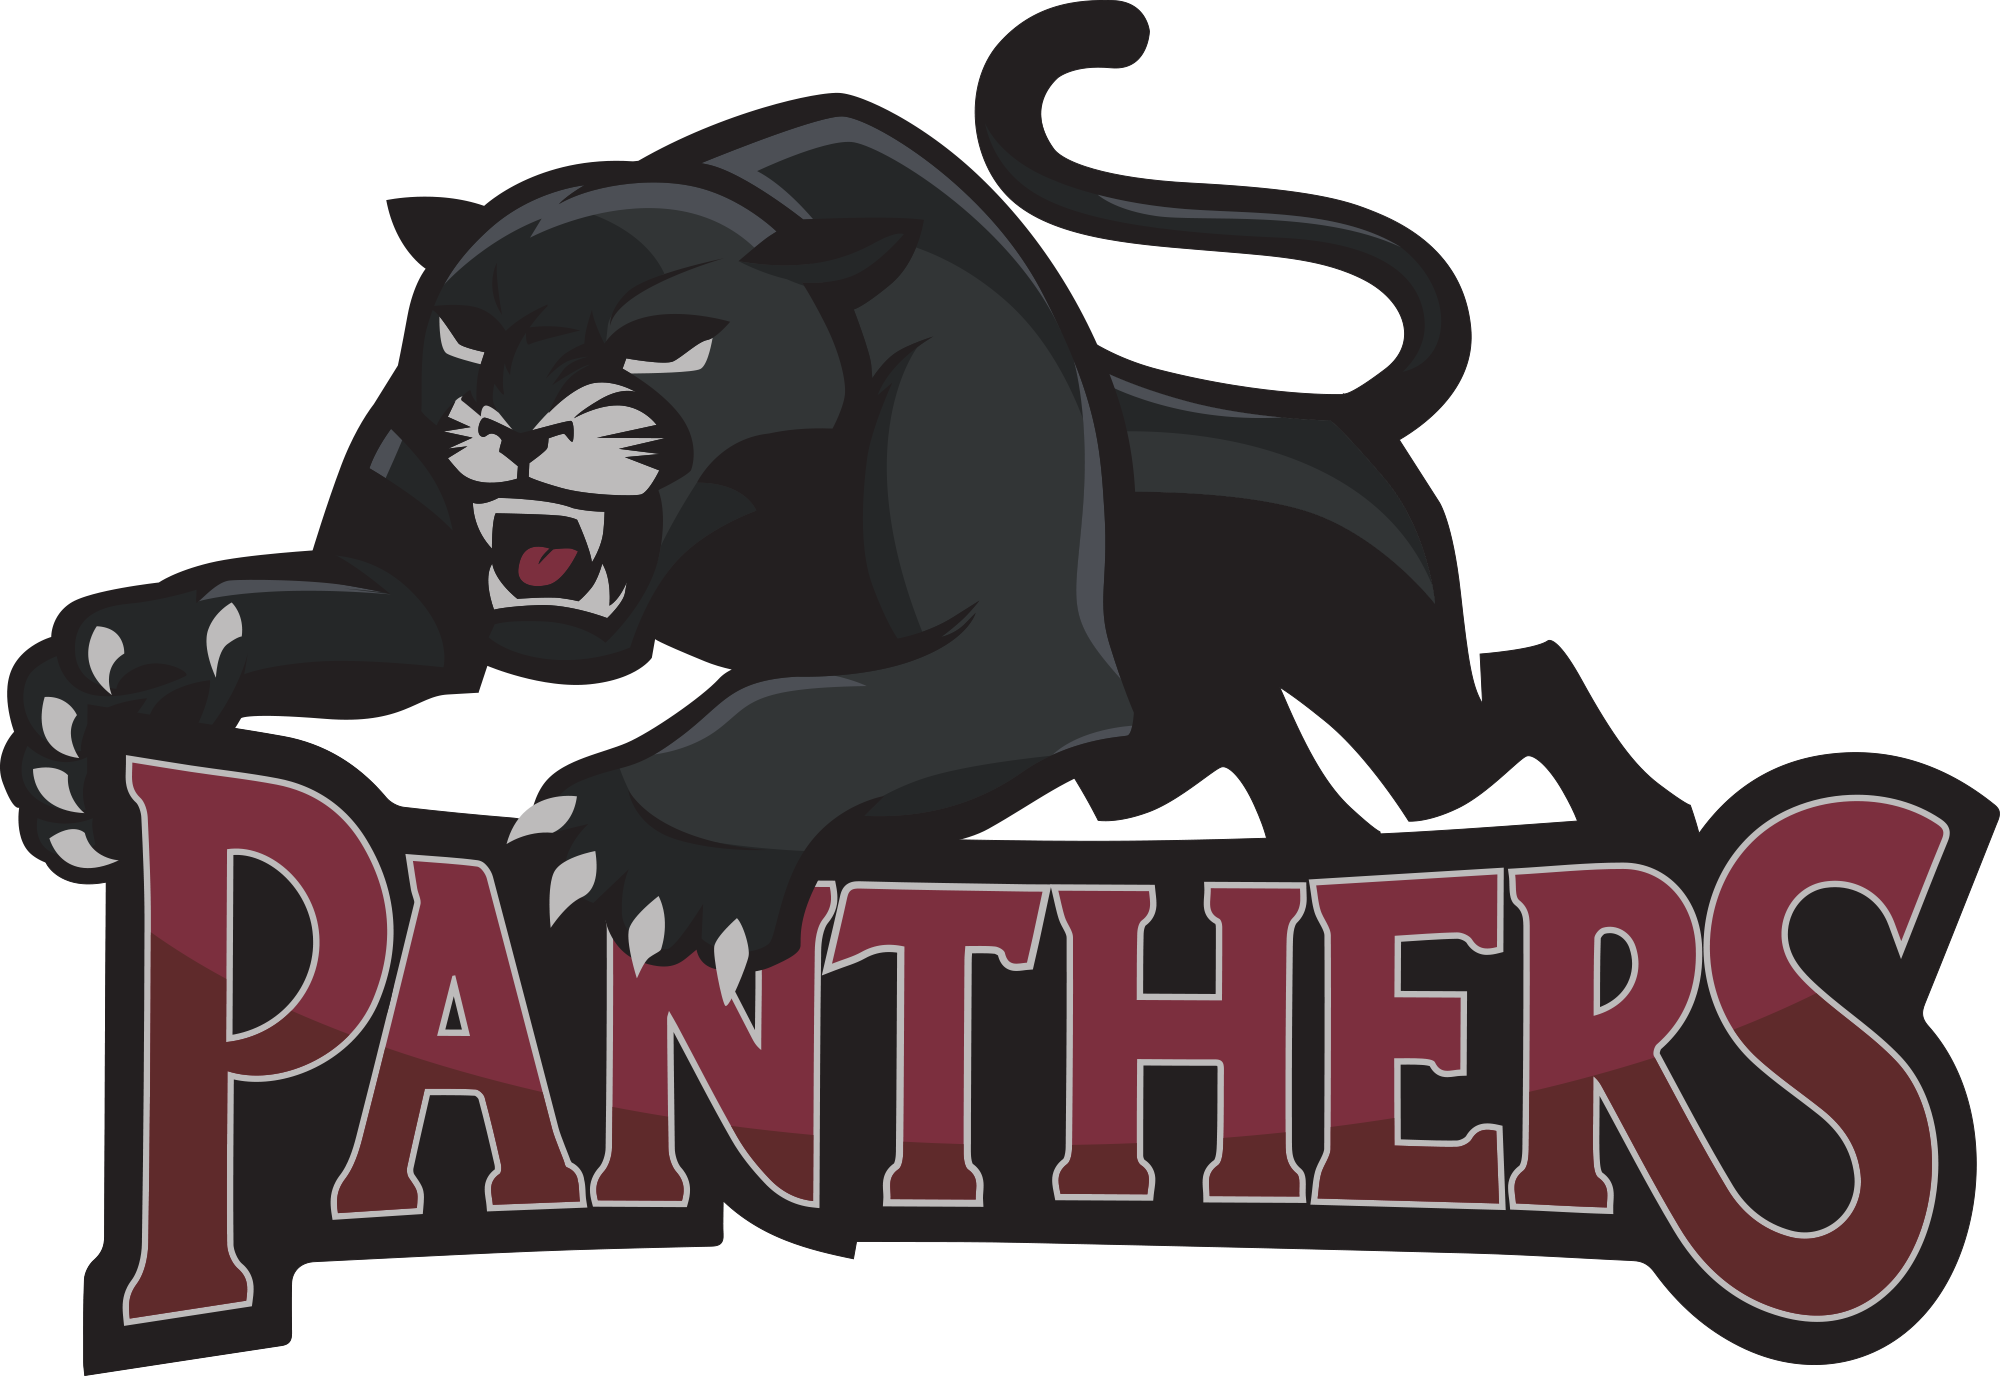 Volleyball clipart panther, Volleyball panther Transparent.